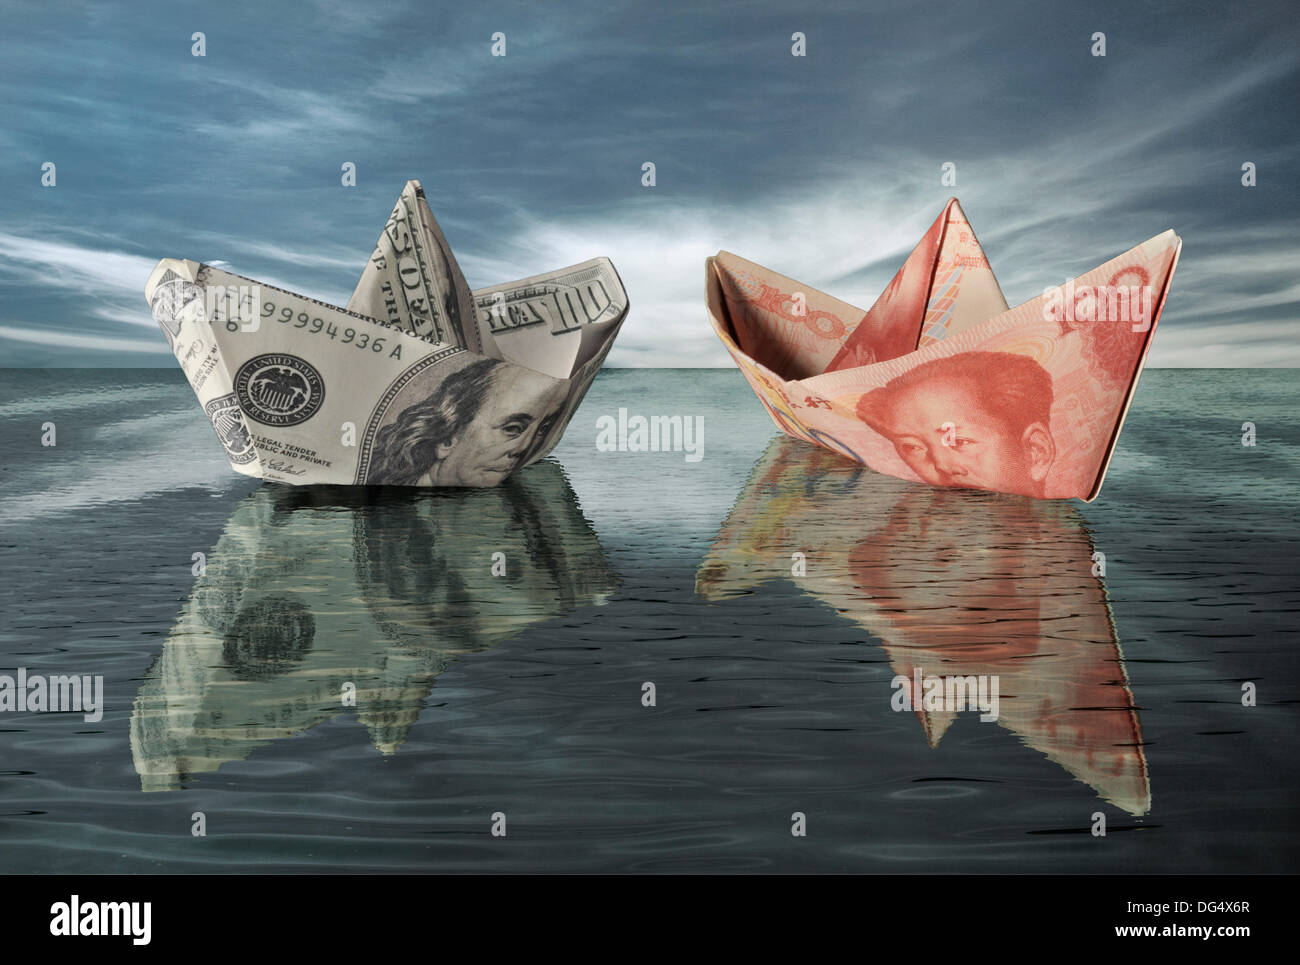 Paper boats of US dollars and Chinese RMBs are facing each other on the high seas. - Stock Image